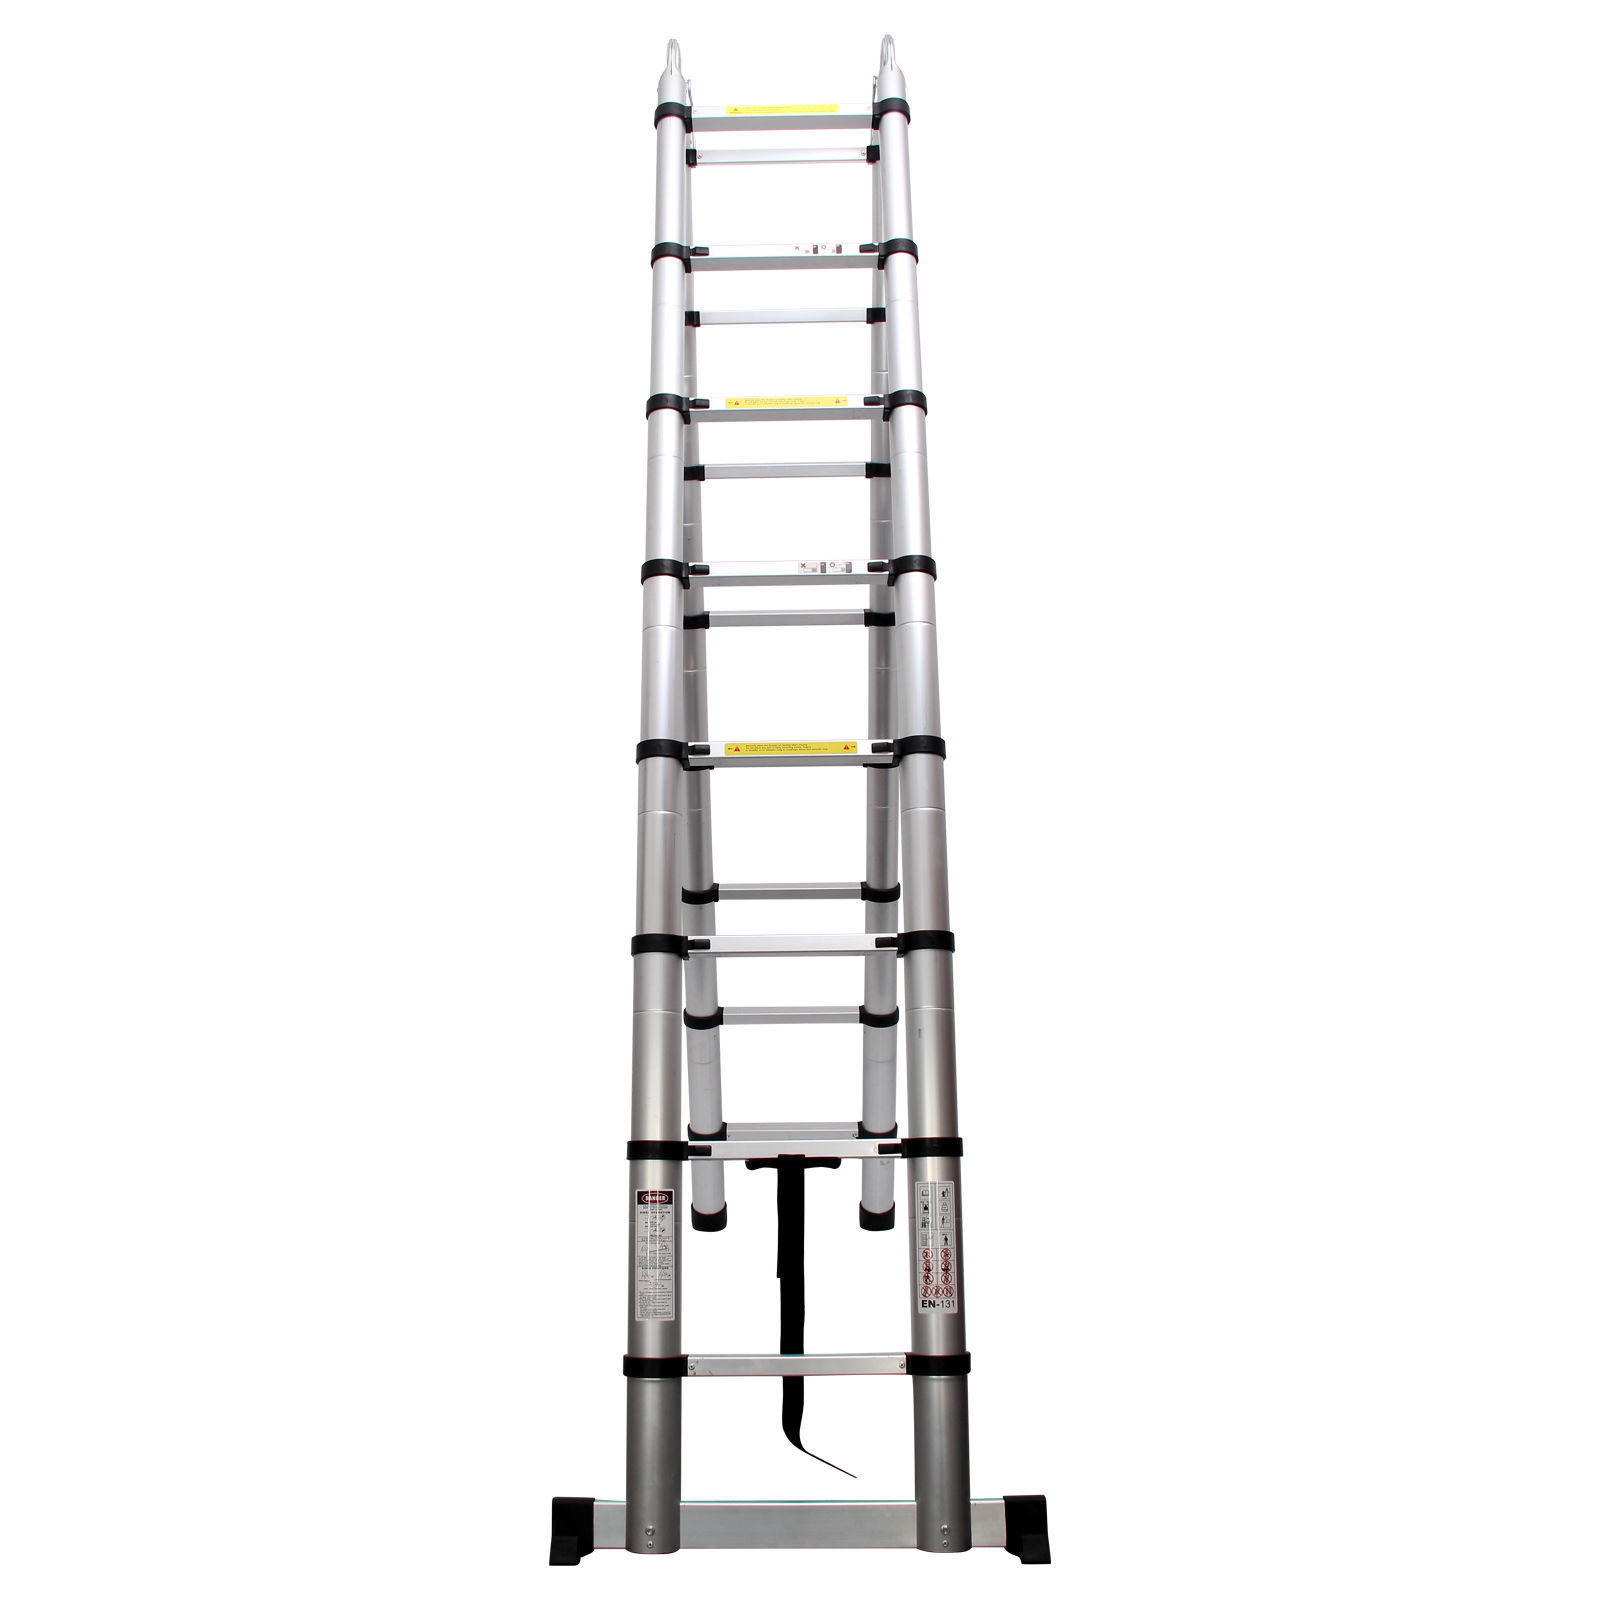 5m Multi Purpose Aluminum Telescopic Roof Ladder Extension